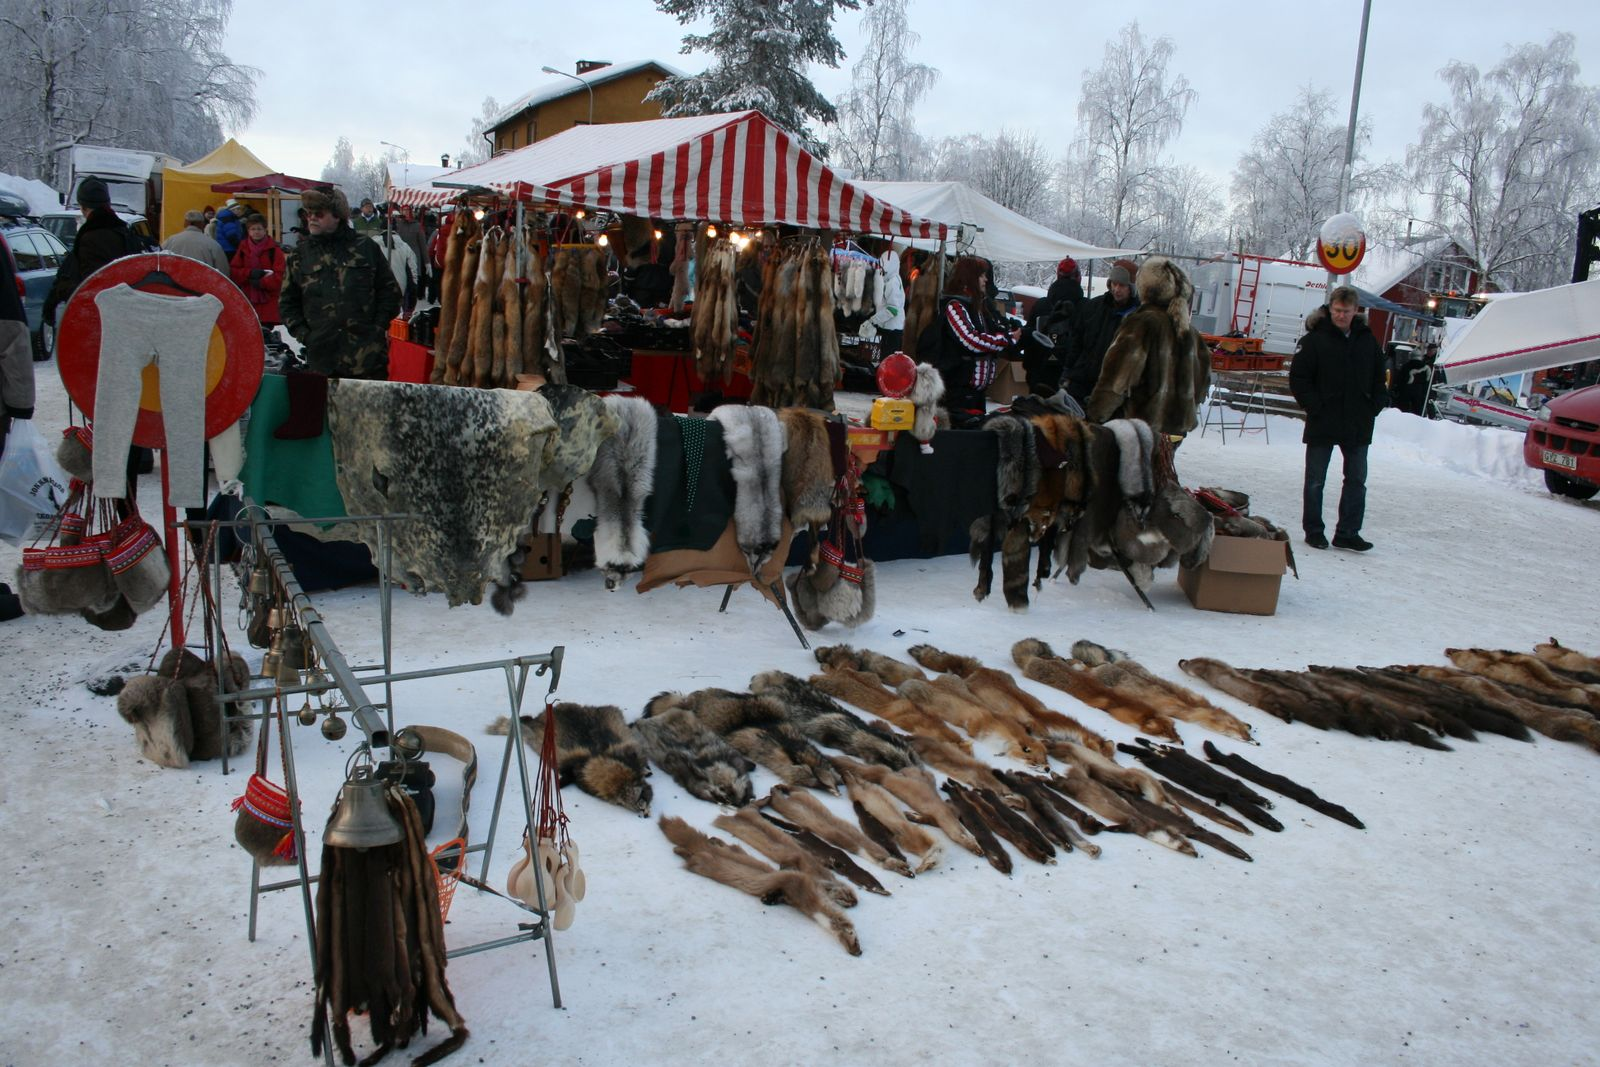 The Sami festival of Jokkmokk Market